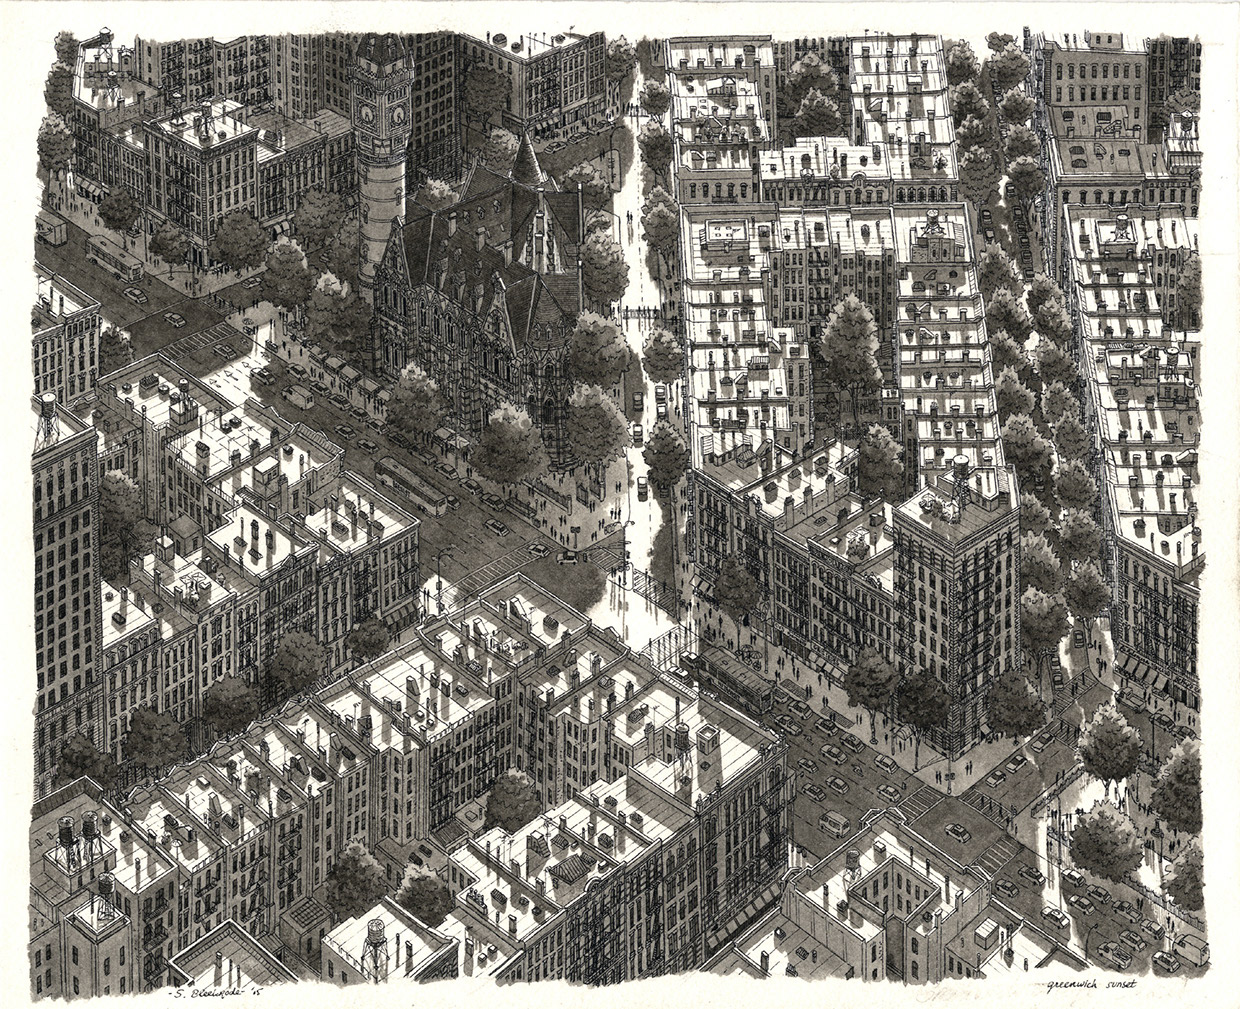 04-Greenwich-Village-Sunset-Stefan-Bleekrode-Detailed-Architectural-Drawing-from-the-Imagination-www-designstack-co